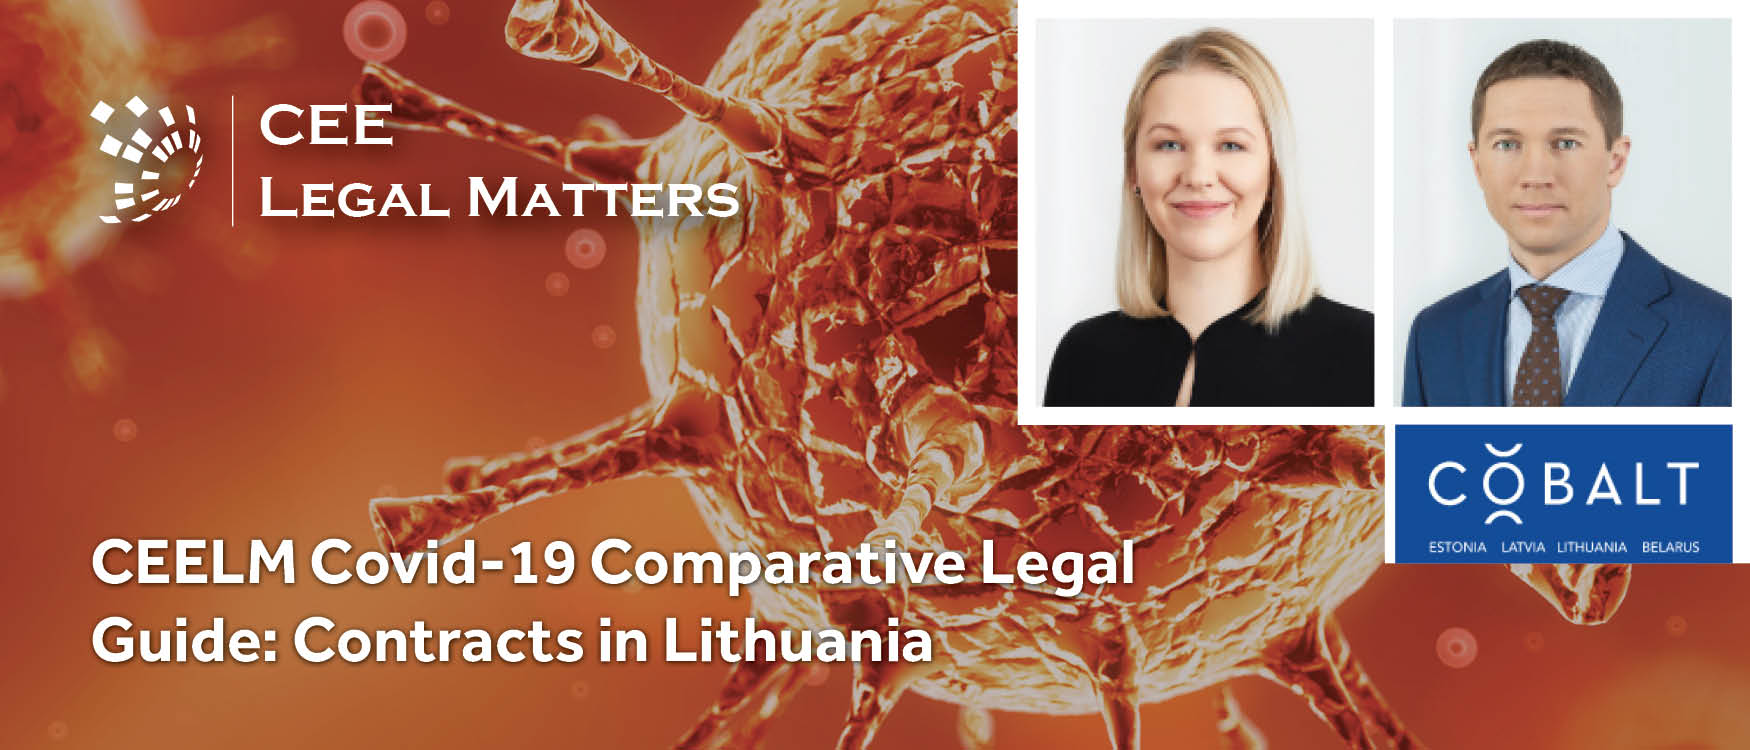 CEELM Covid-19 Comparative Legal Guide: Contracts in Lithuania